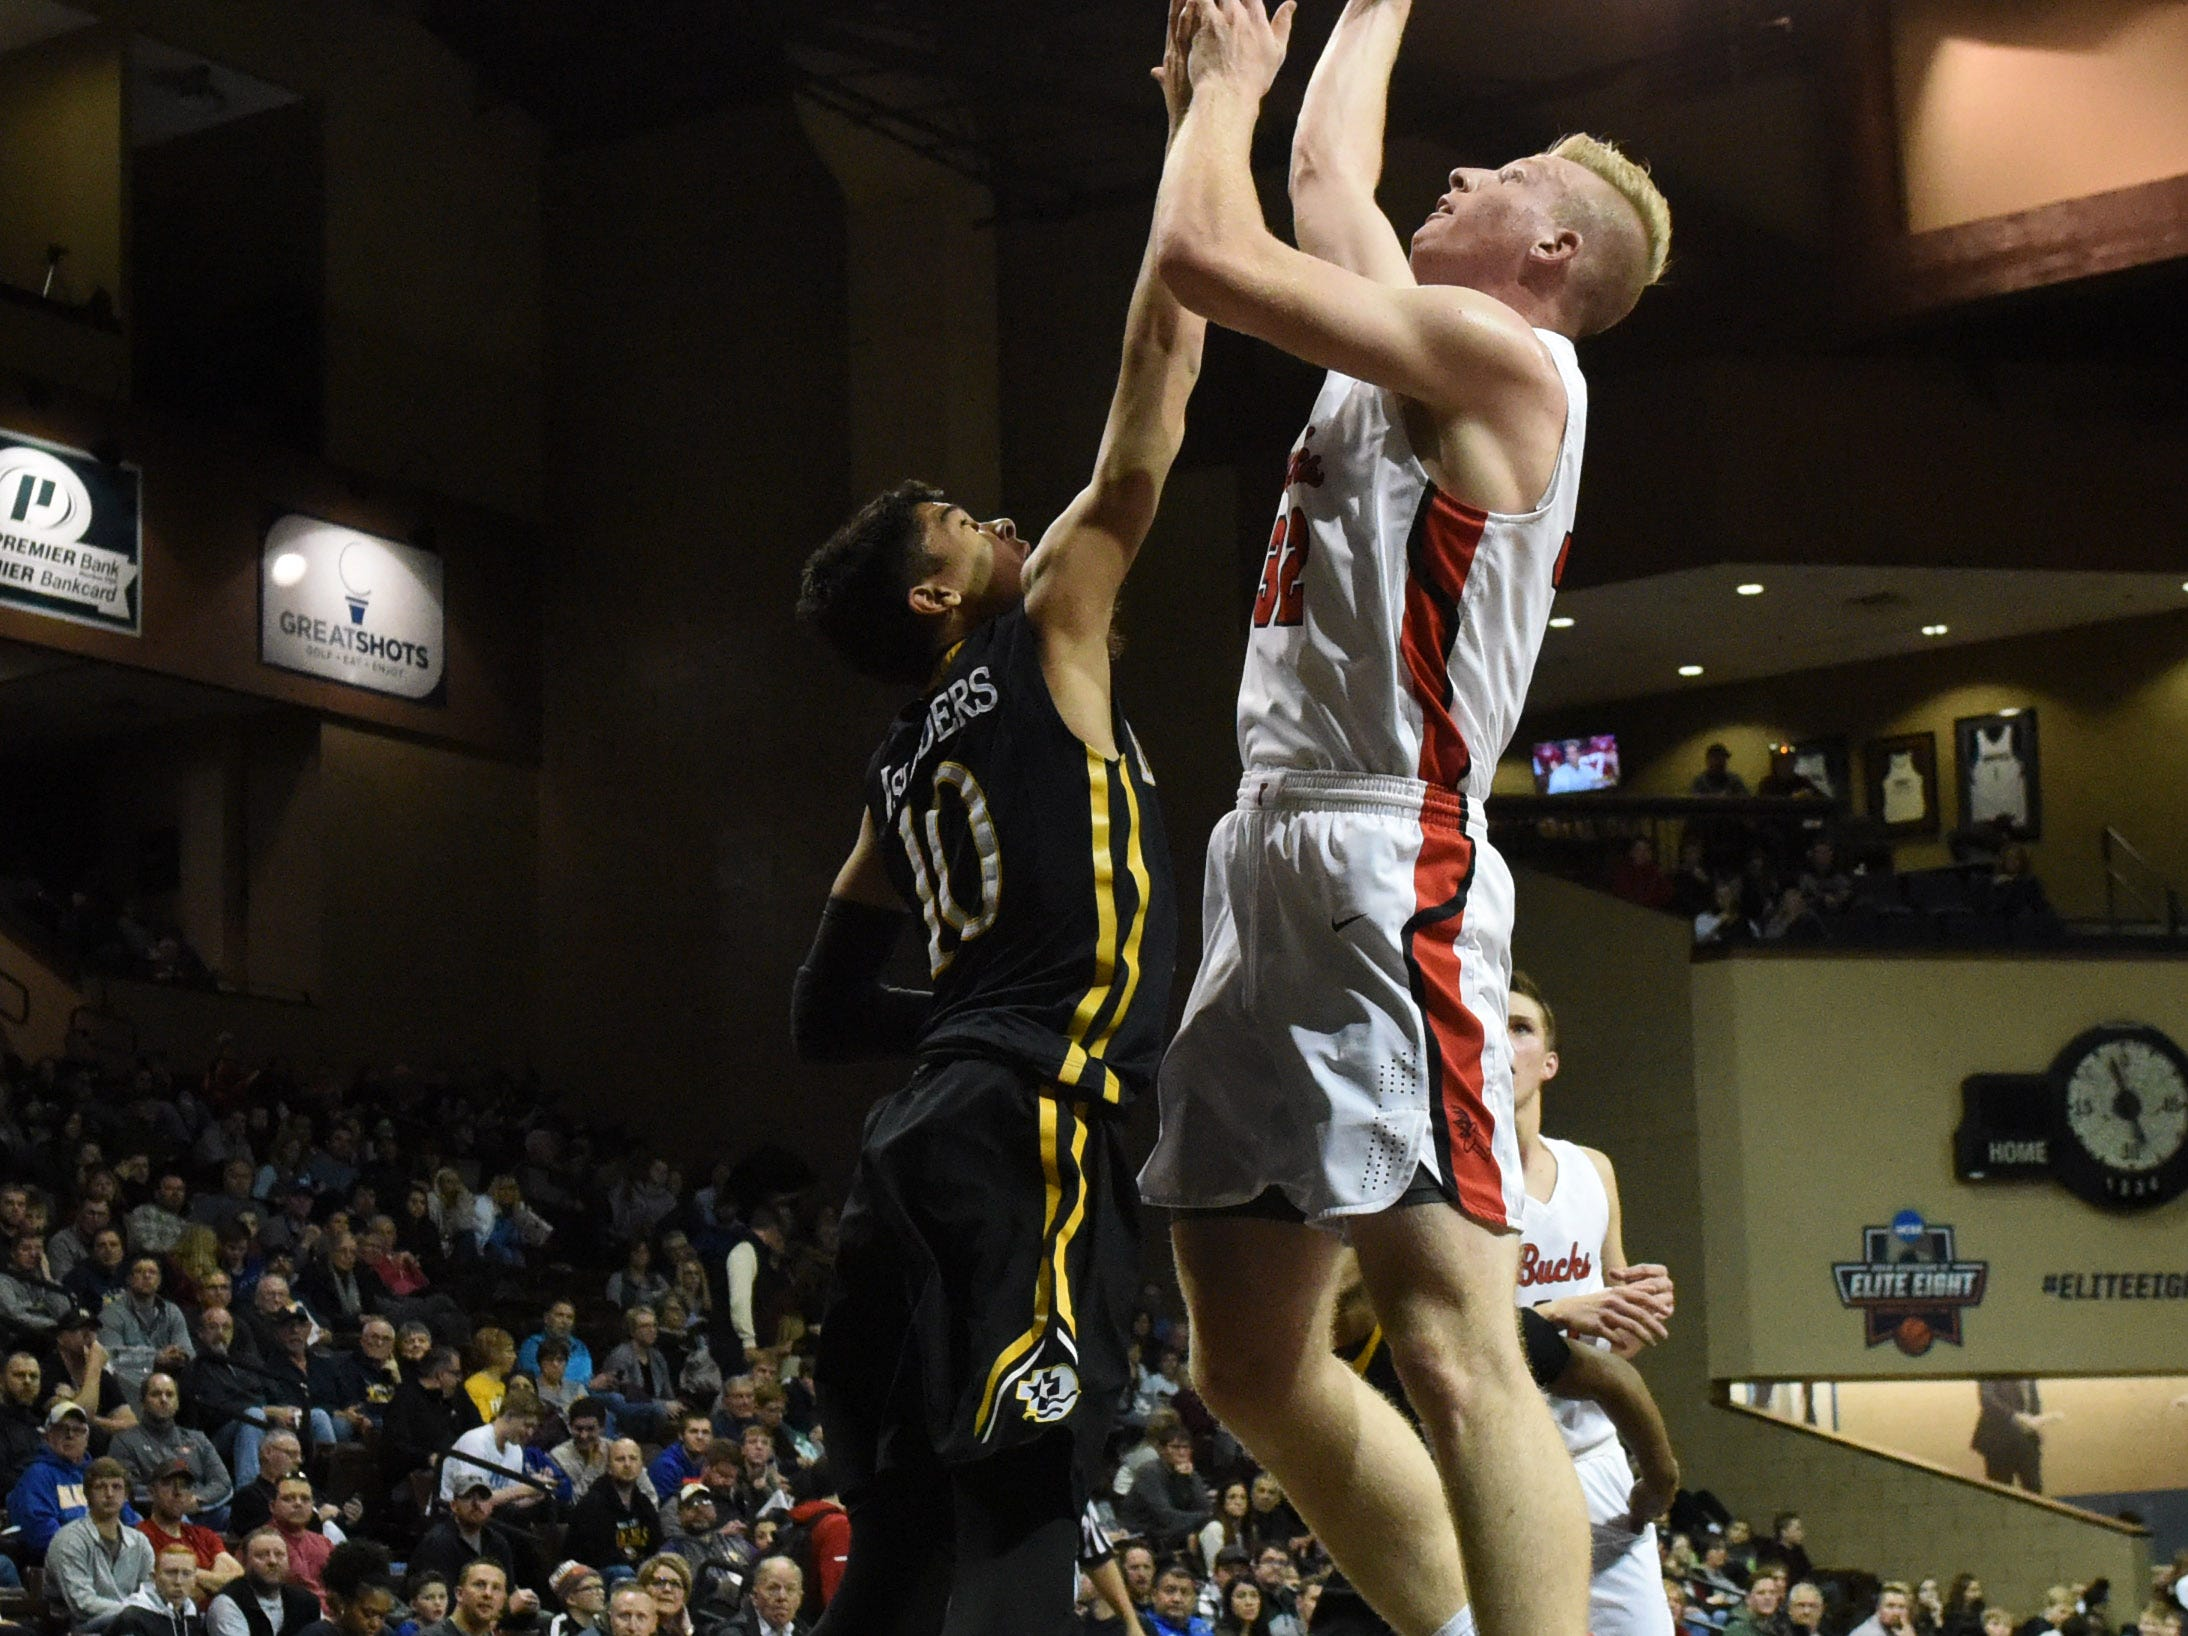 Yankton's Matthew Mors (32) shoots the ball during a game against DeLaSalle at the Hoop City Classic at the Sanford Pentagon in Sioux Falls, S.D., Saturday, Dec. 29, 2018.